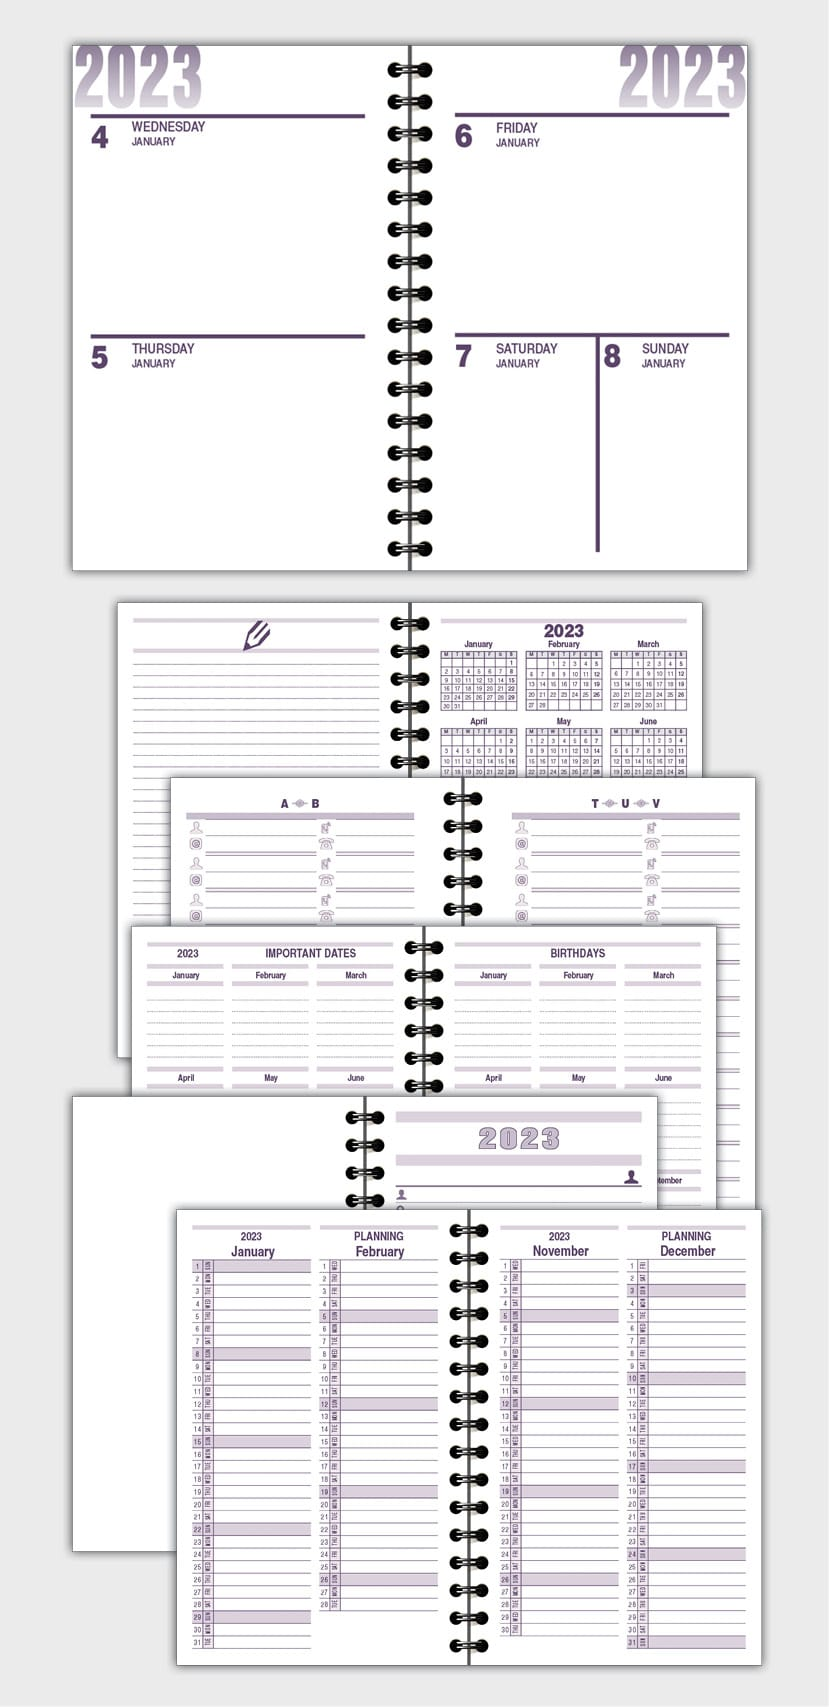 2021 DAILY PLANNER AGENDA TEMPLATE MODEL ATD41